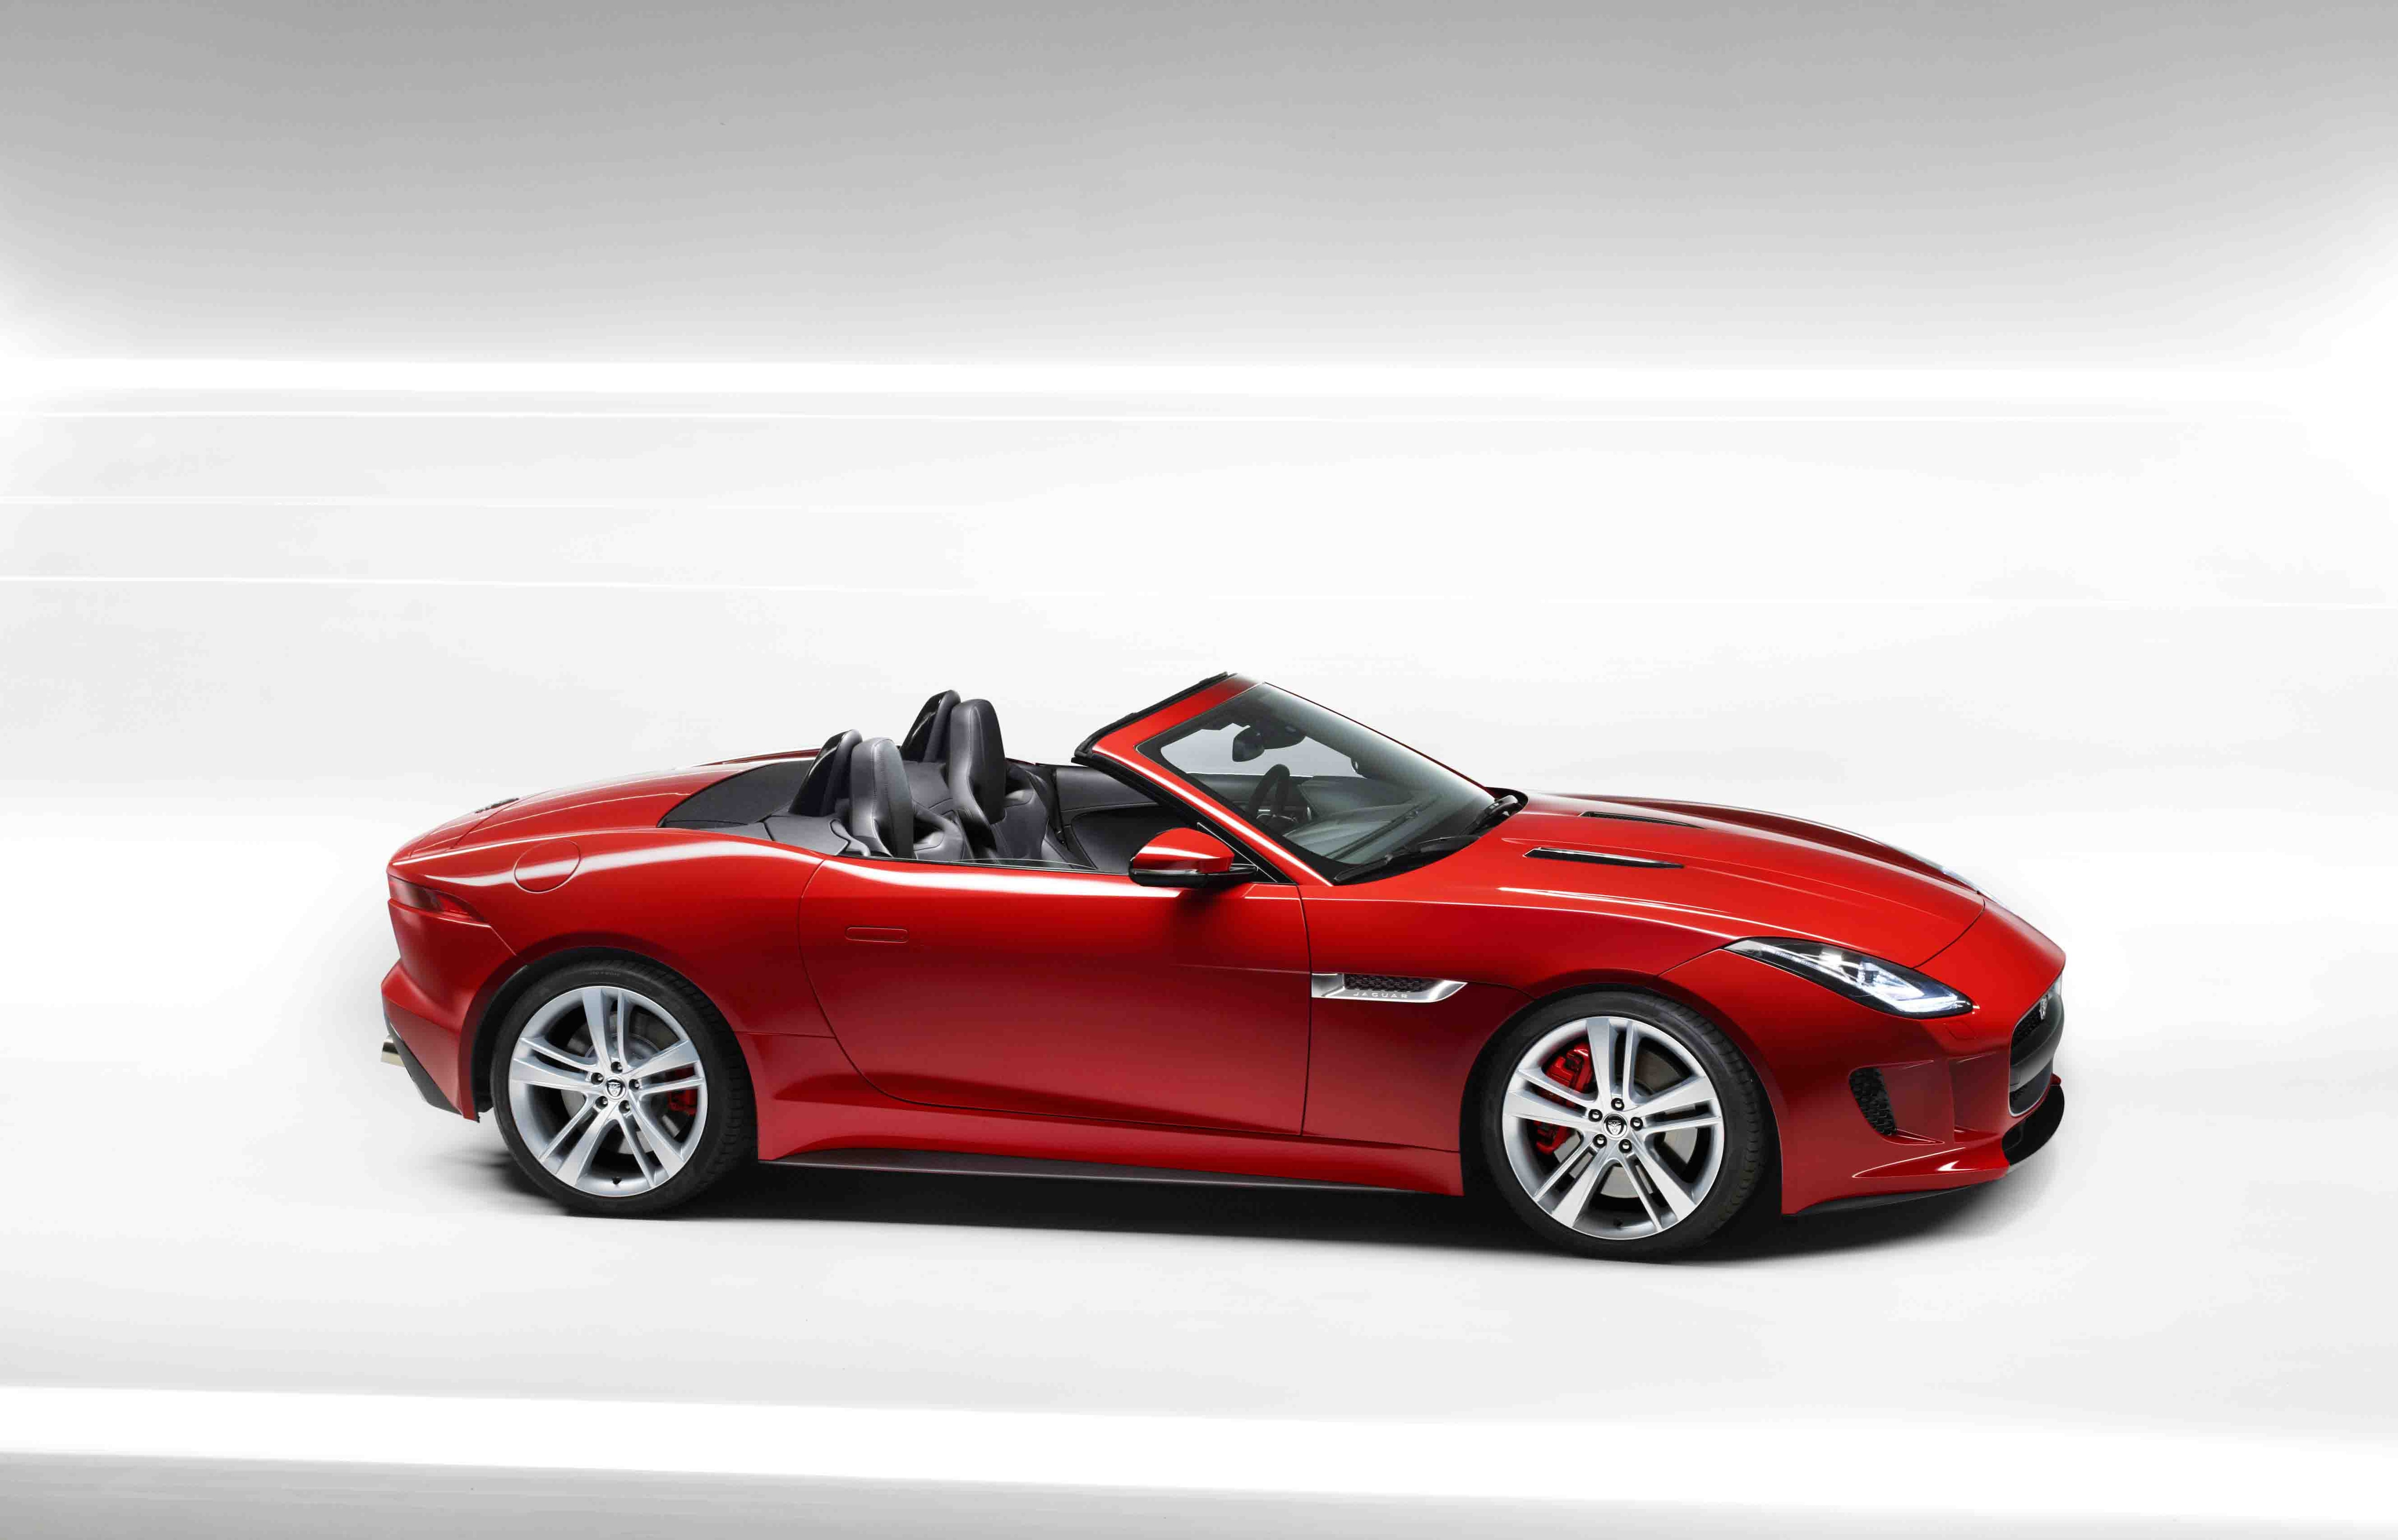 jaguar f type v8 s price in india features car specifications review. Black Bedroom Furniture Sets. Home Design Ideas